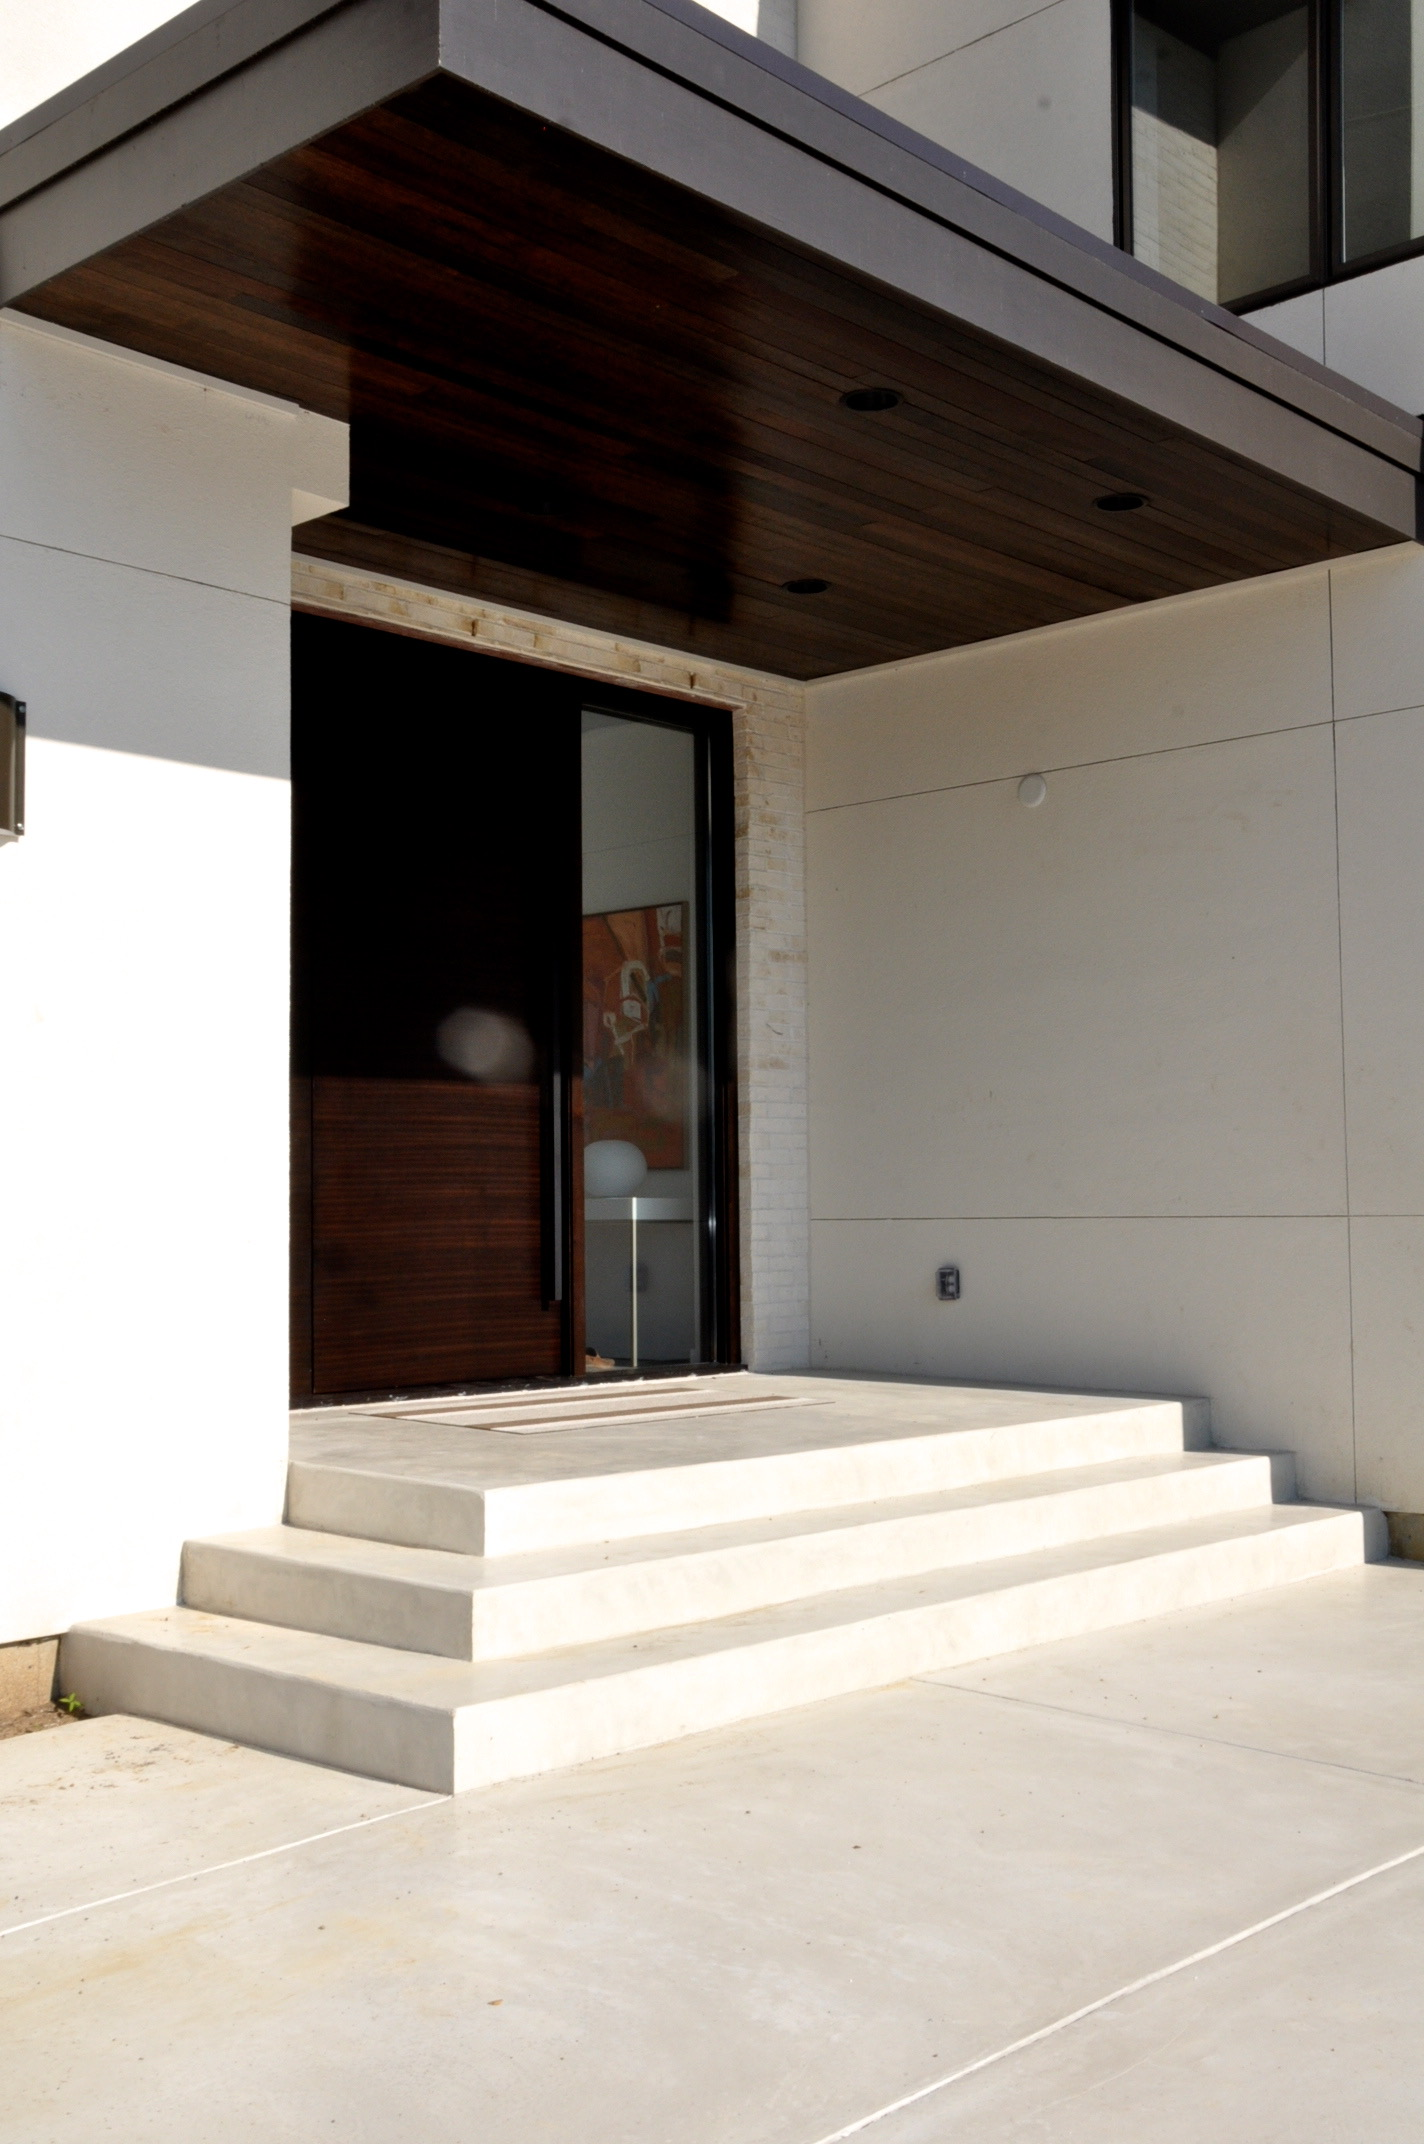 whit dyed smooth finish concrete landing, steps, front courtyard.jpg